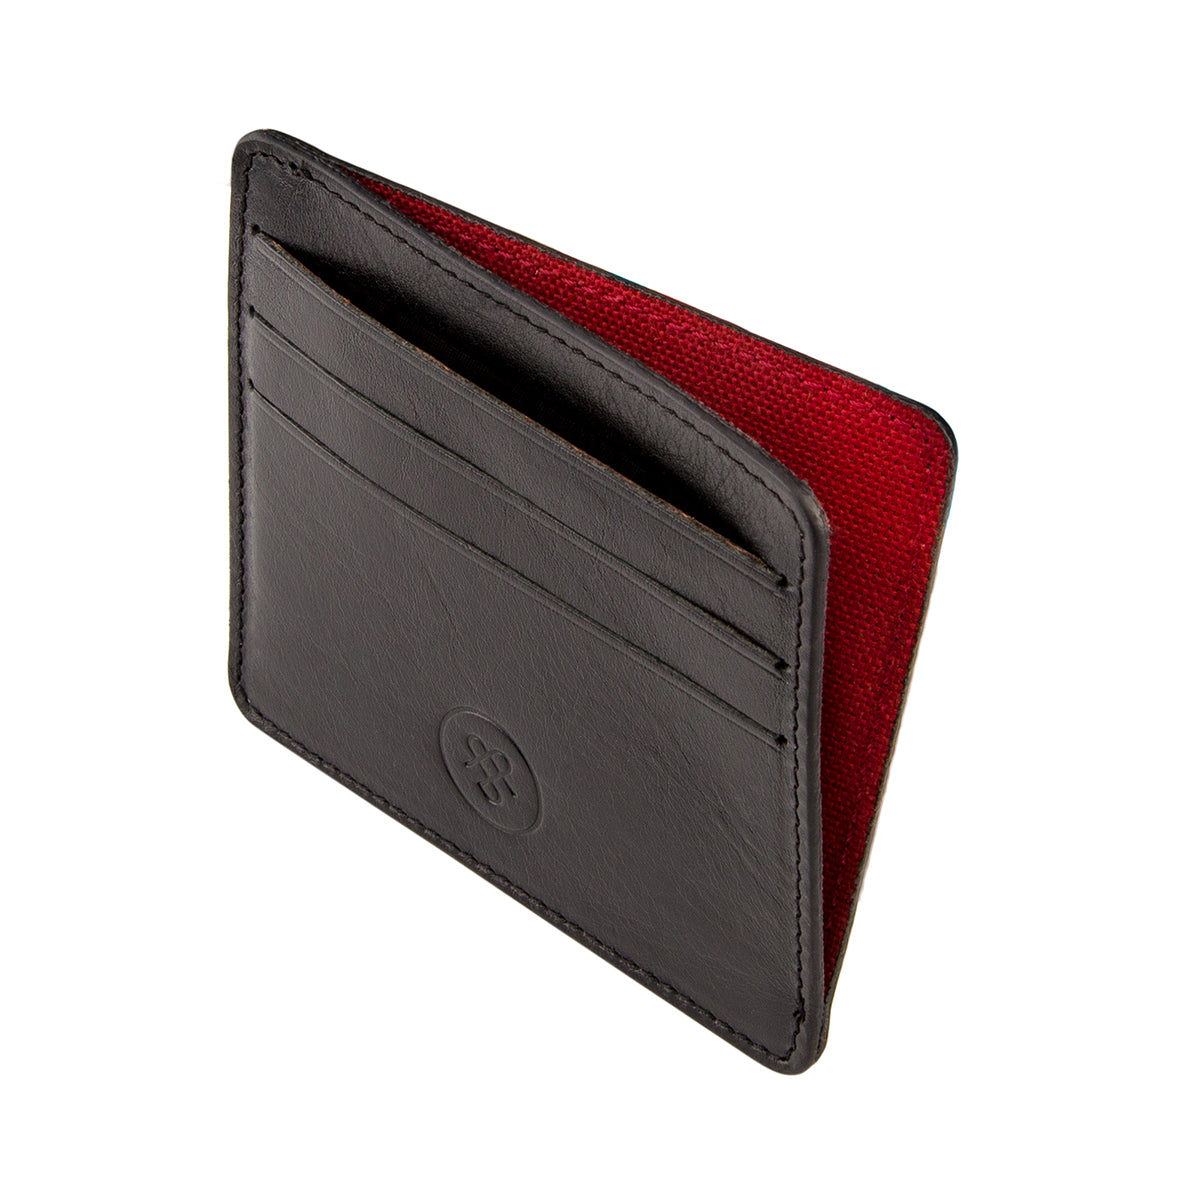 Image 3 of the 'Marco' Black Veg-Tanned Leather Wallet